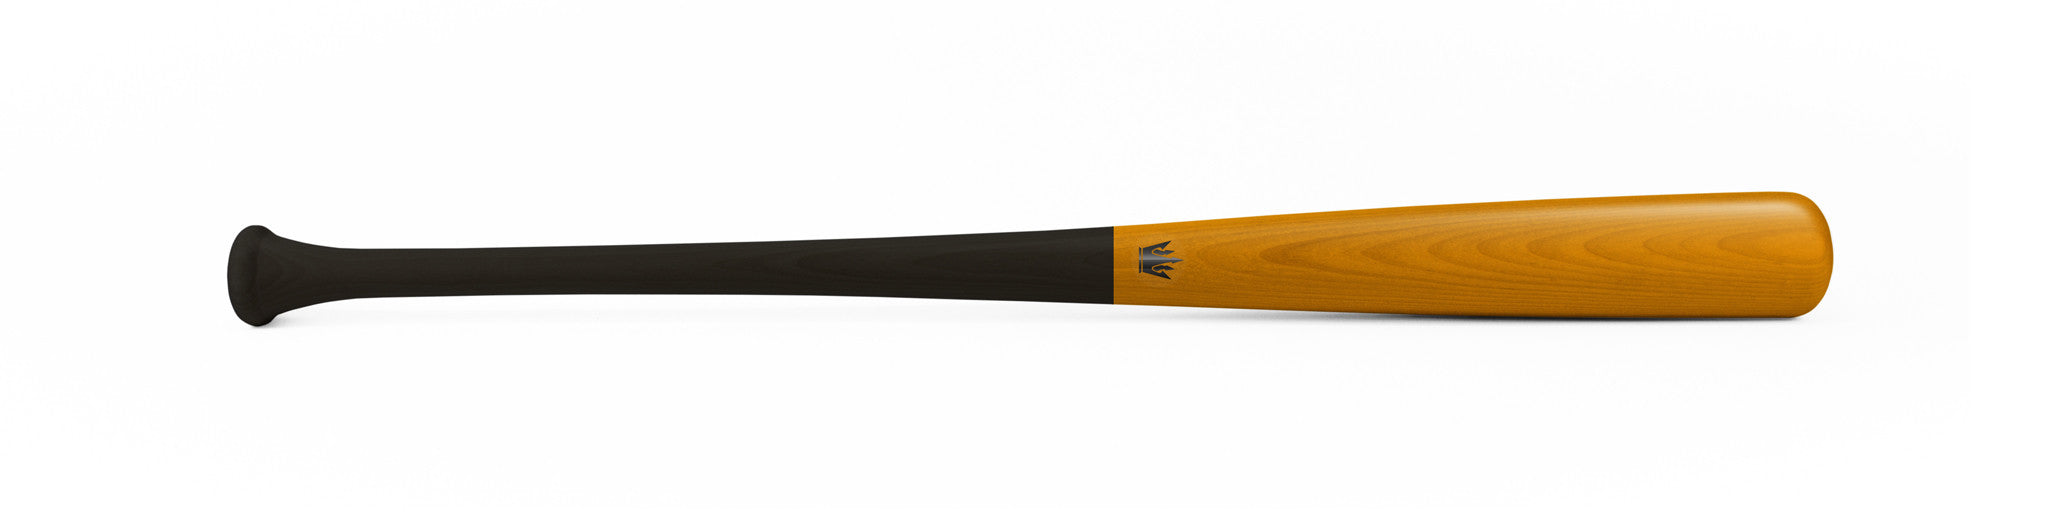 Wood bat - Birch model Y271 Black Gold - 16